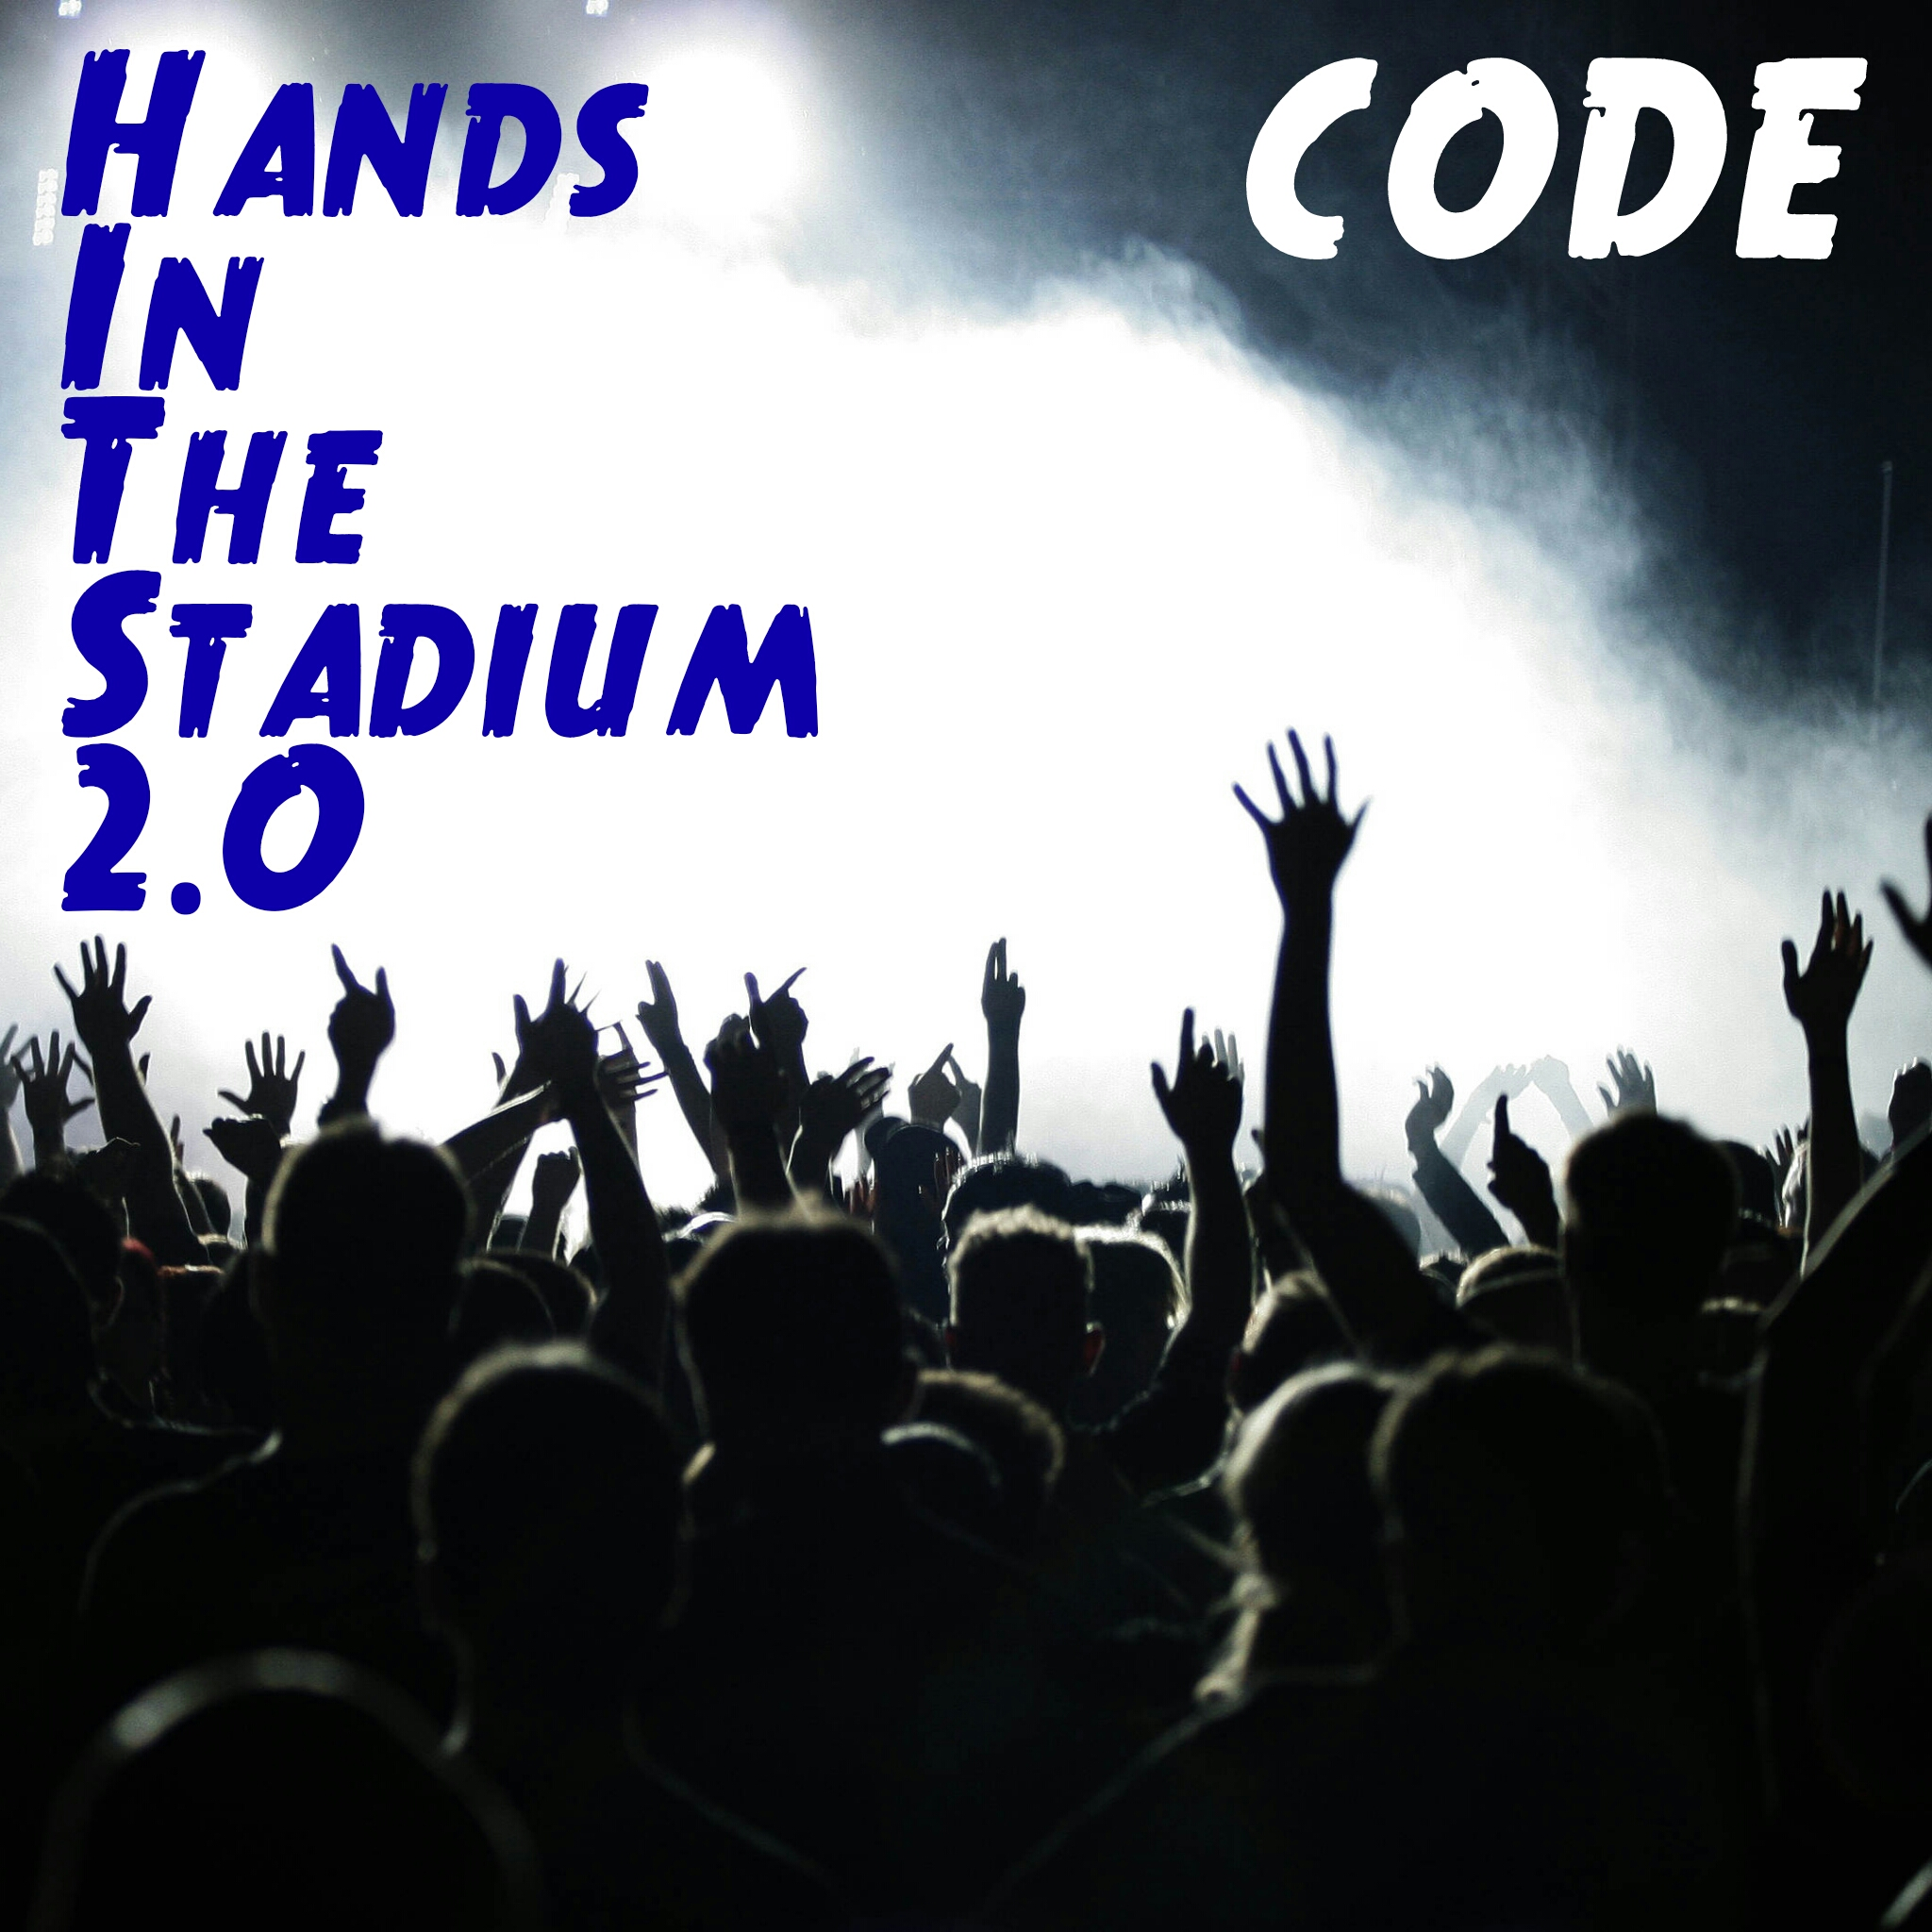 DOWNLOAD: Hands In The Stadium 2.O (H.I.T.S) – CODE